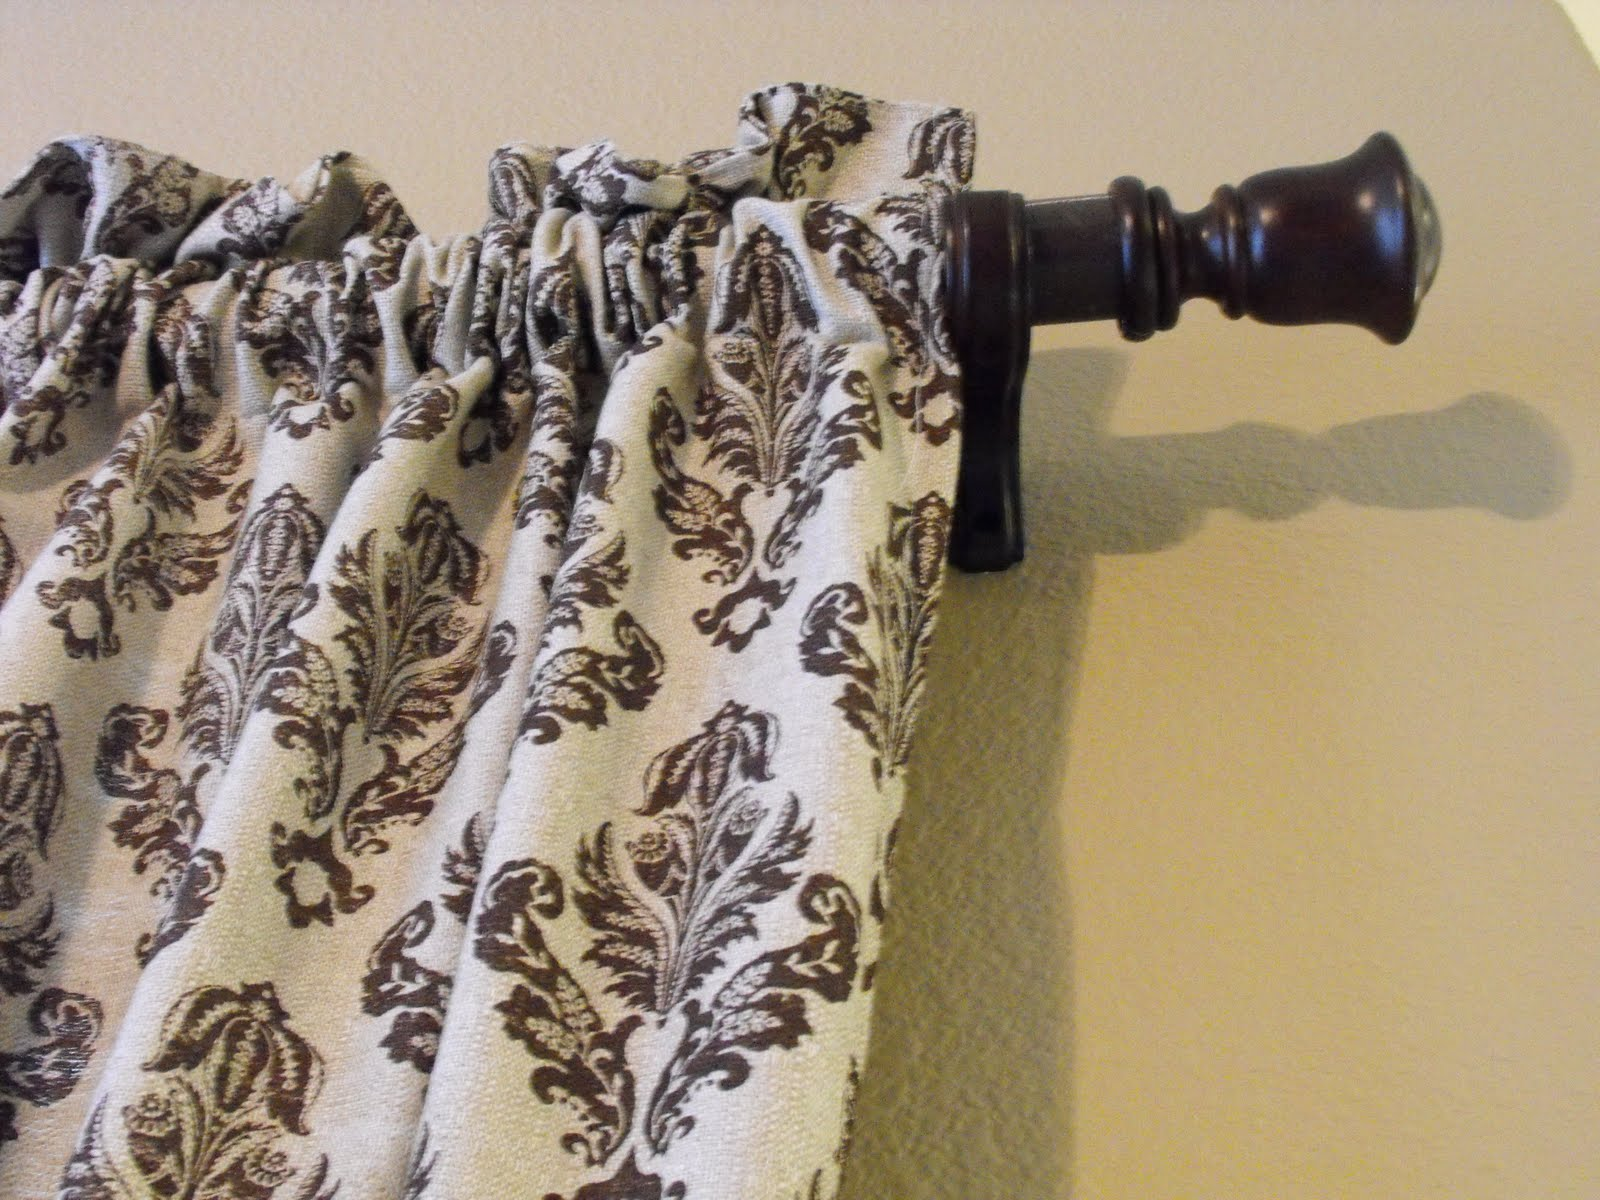 A Little Of This That PVC Pipe Curtain Rods PART 2